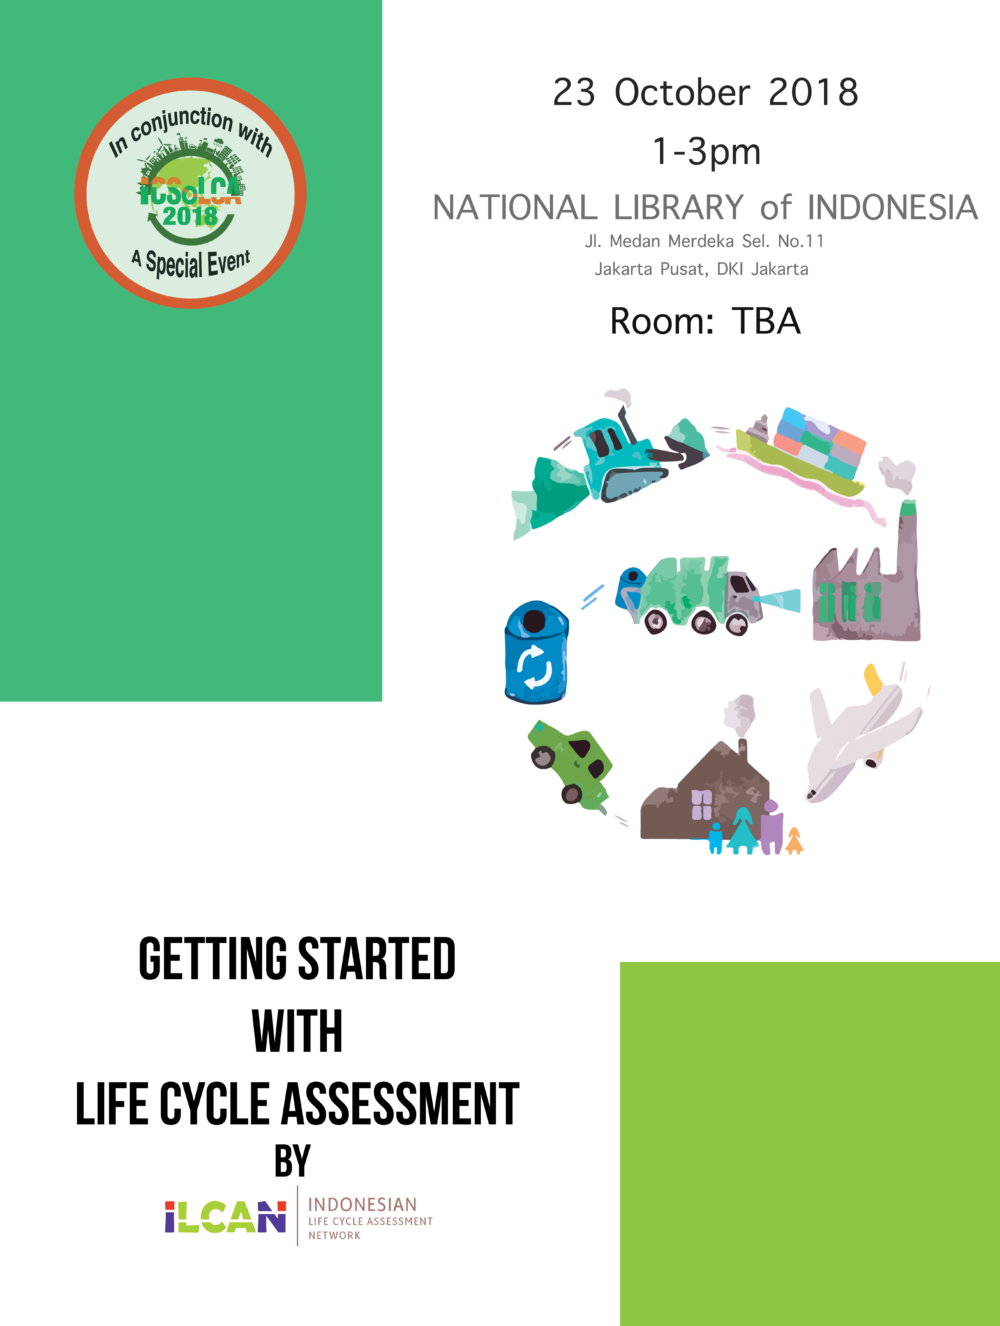 Special Events Icsolca Universitas Indonesia Biosimapro Join Life Cycle And Pr For Simapro User Group Meeting On October 23 The Evening Before 3rd International Conference Series Lca